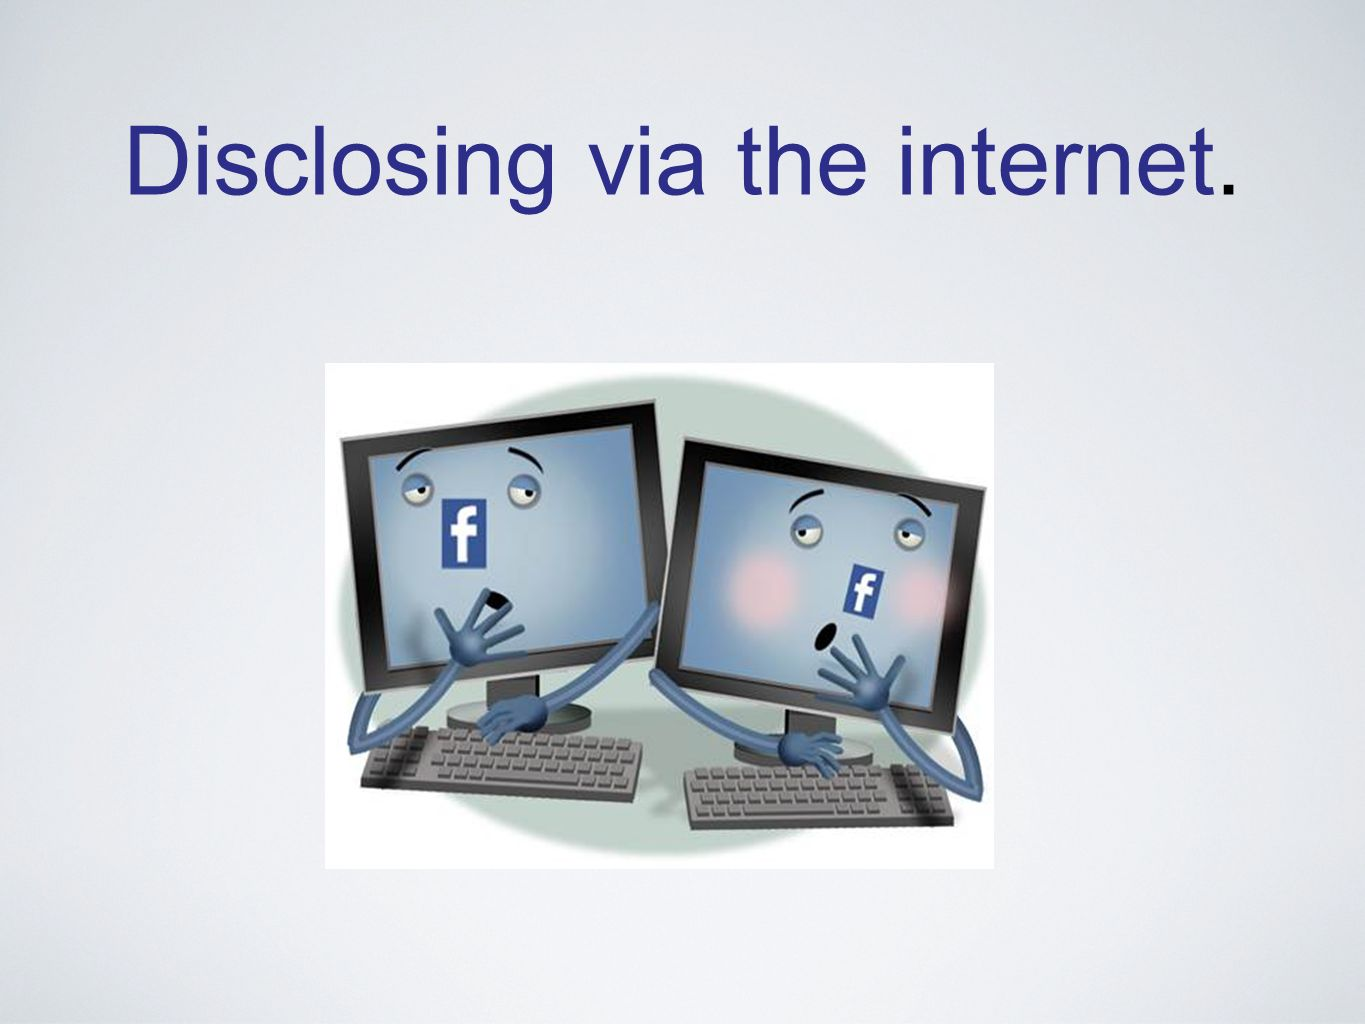 Disclosing via the internet.